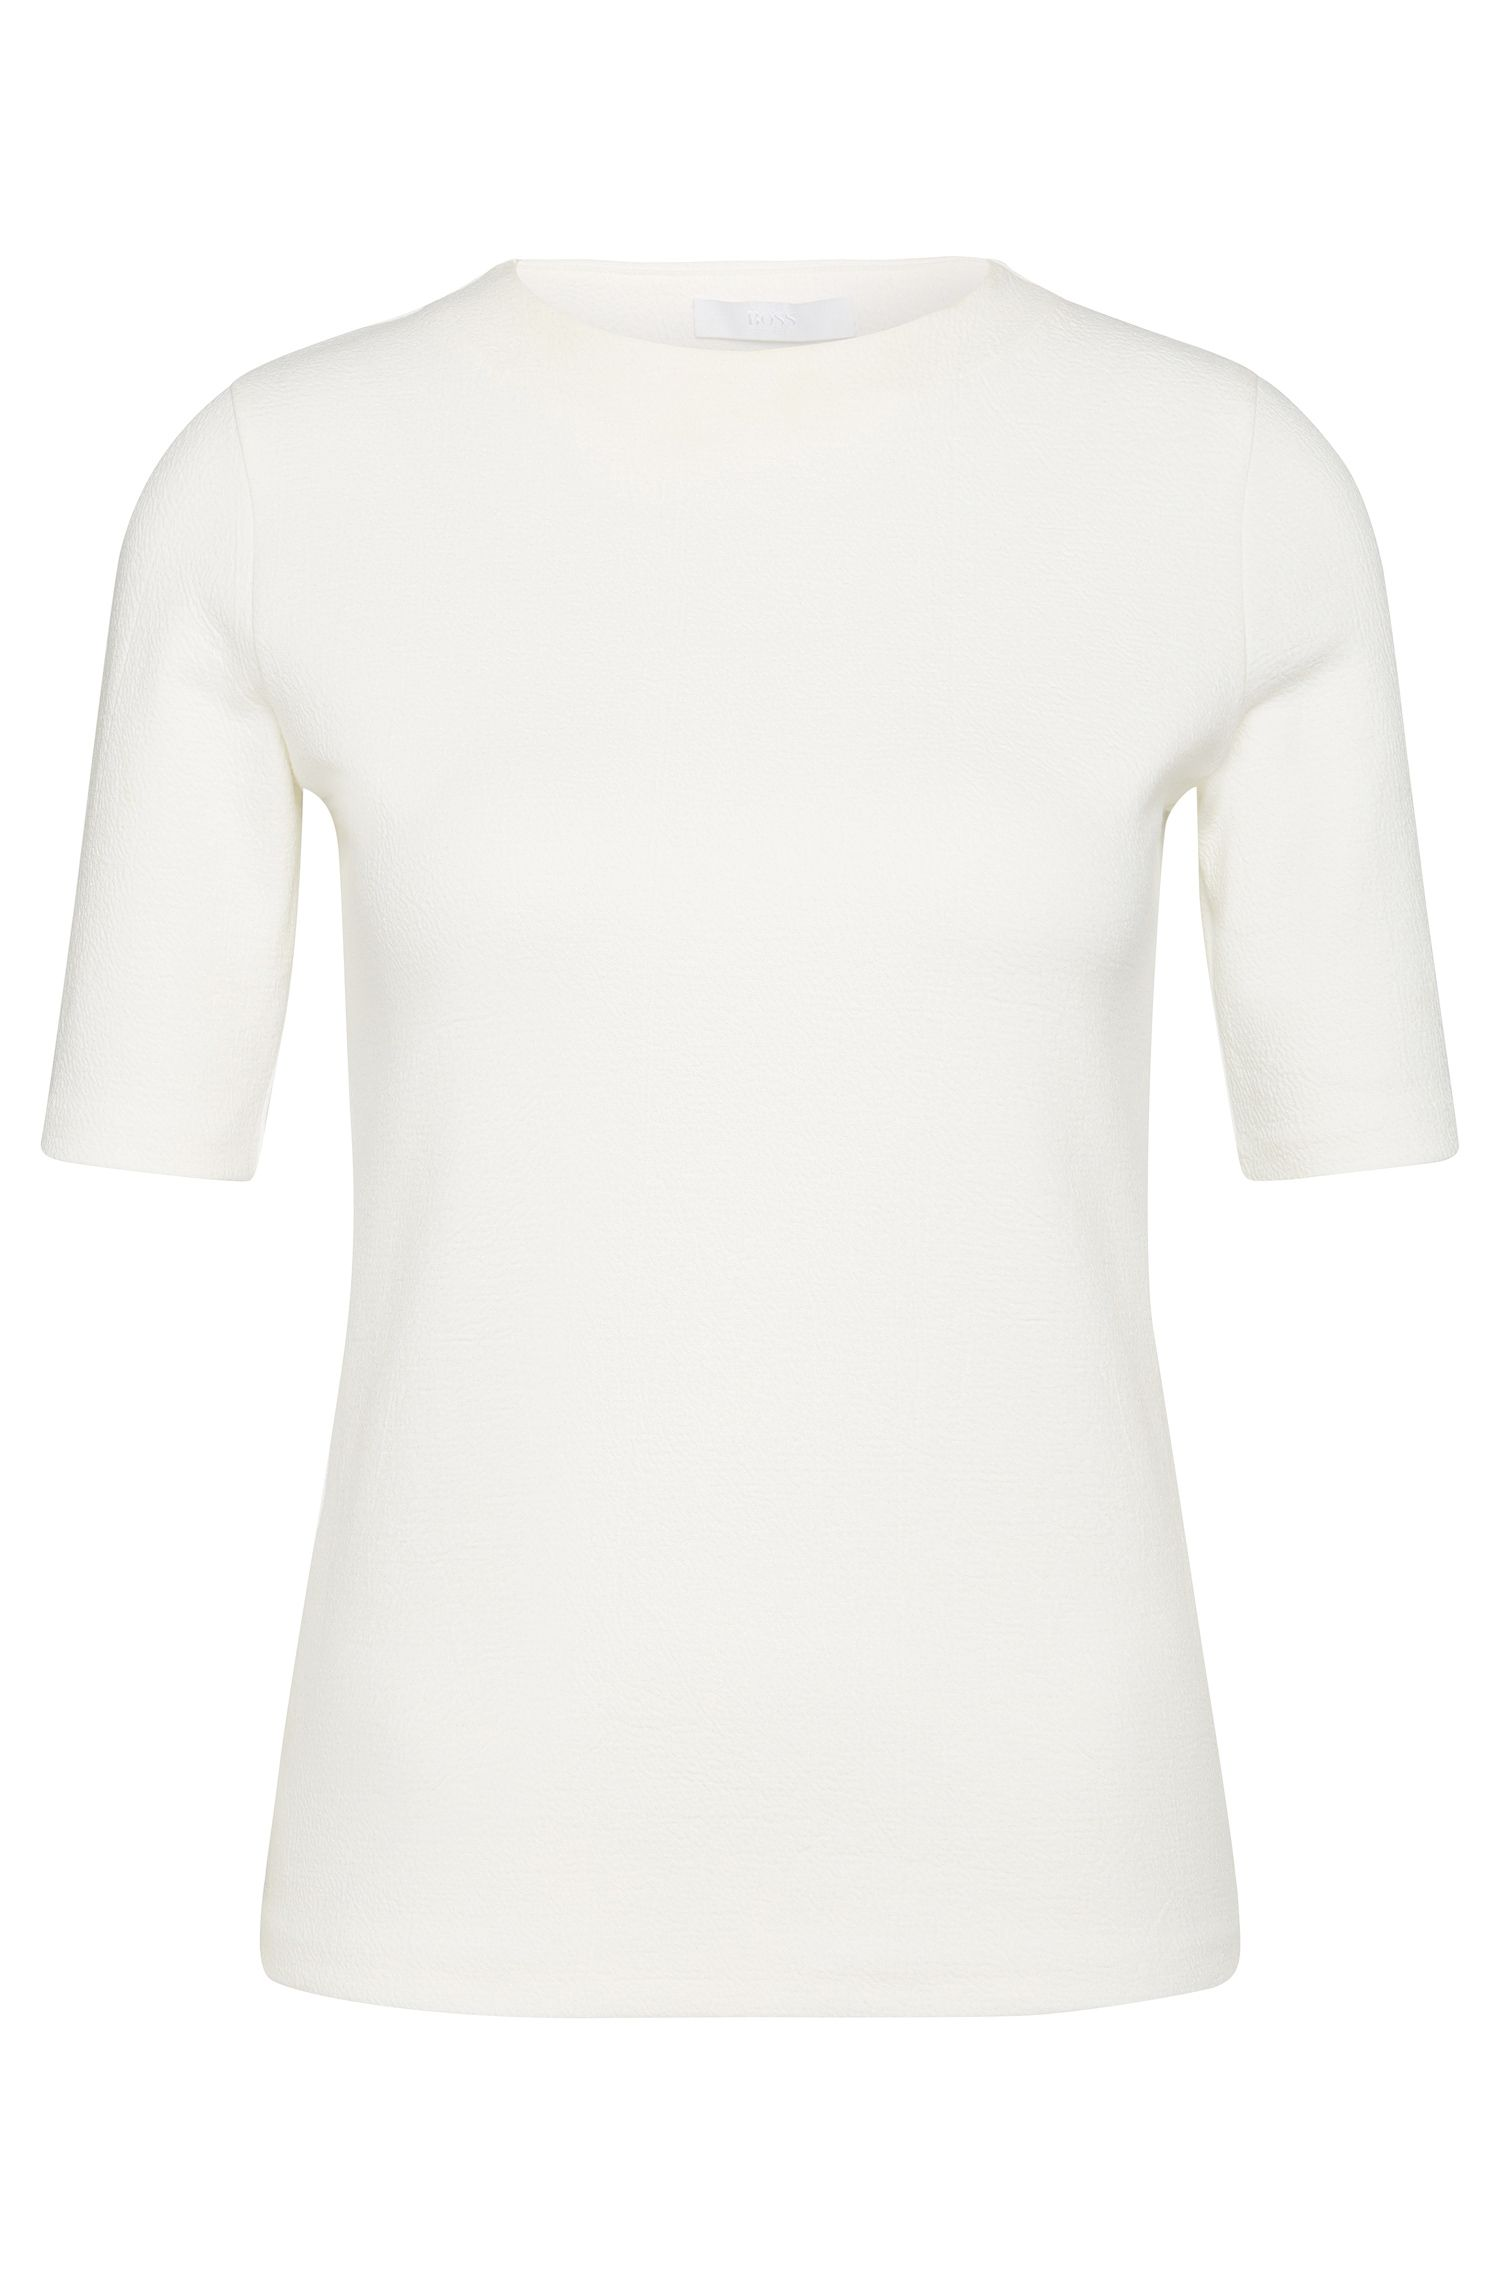 Half-sleeve top in stretchy cotton blend: 'Eriane'